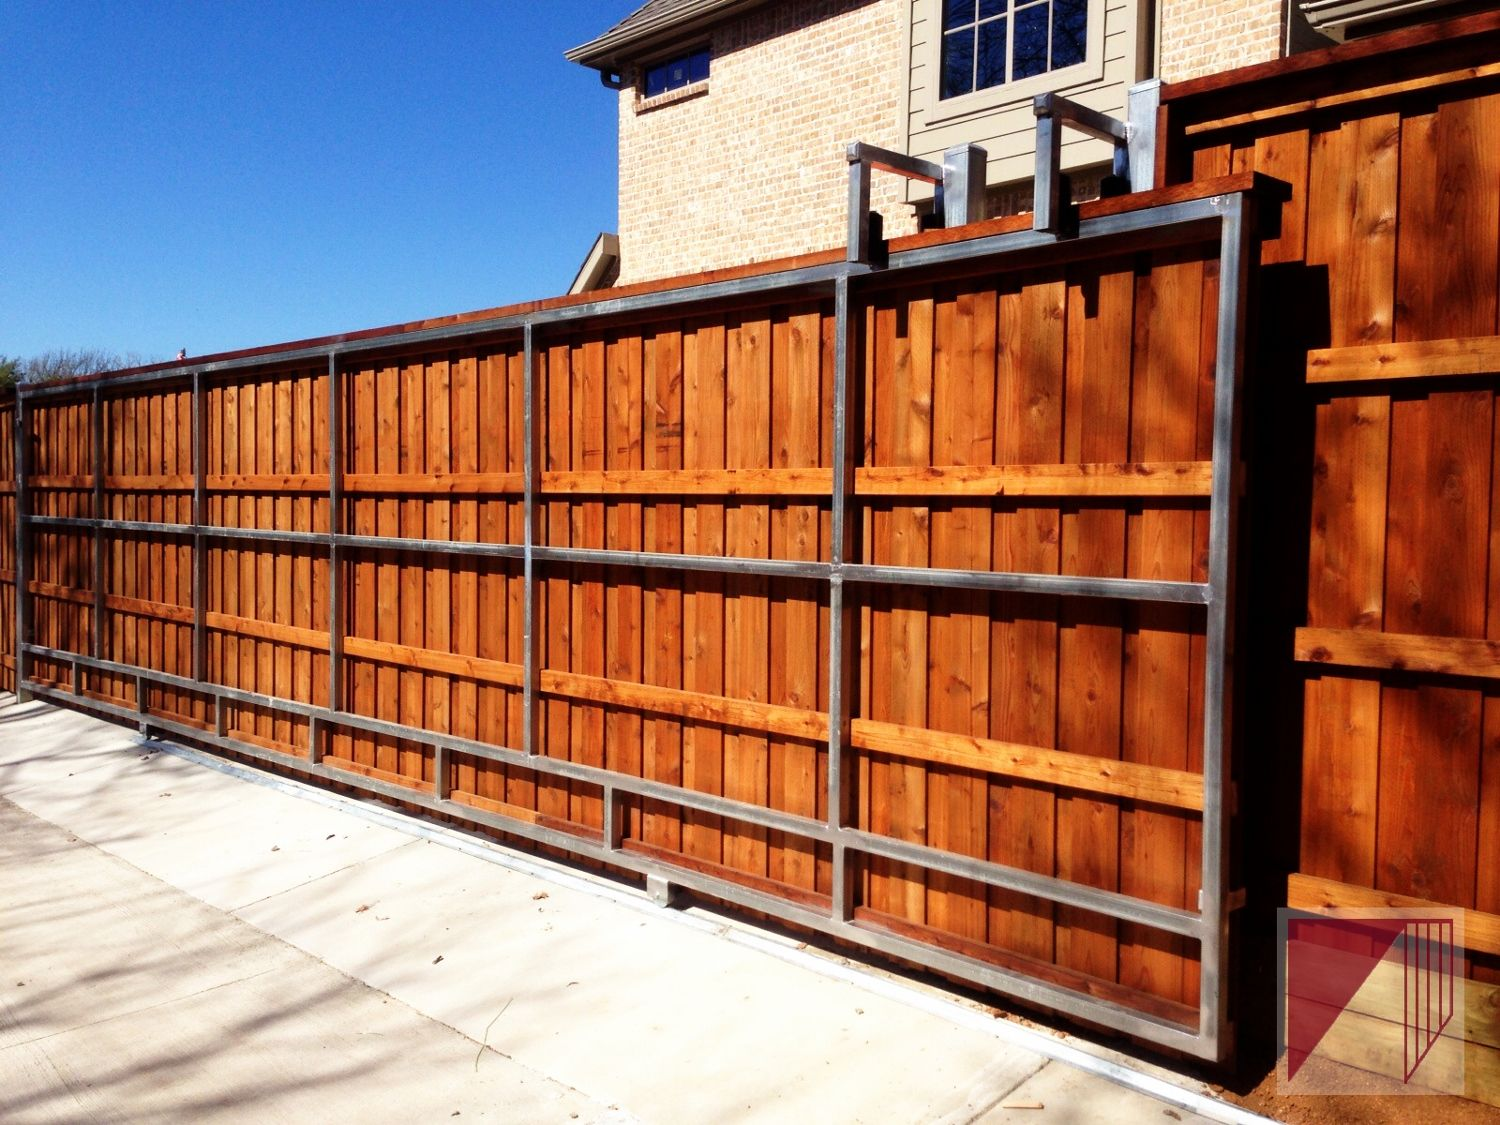 Wooden Sliding Gates Manufacturer From Chennai: A Very Long Wooden Slide Gate.